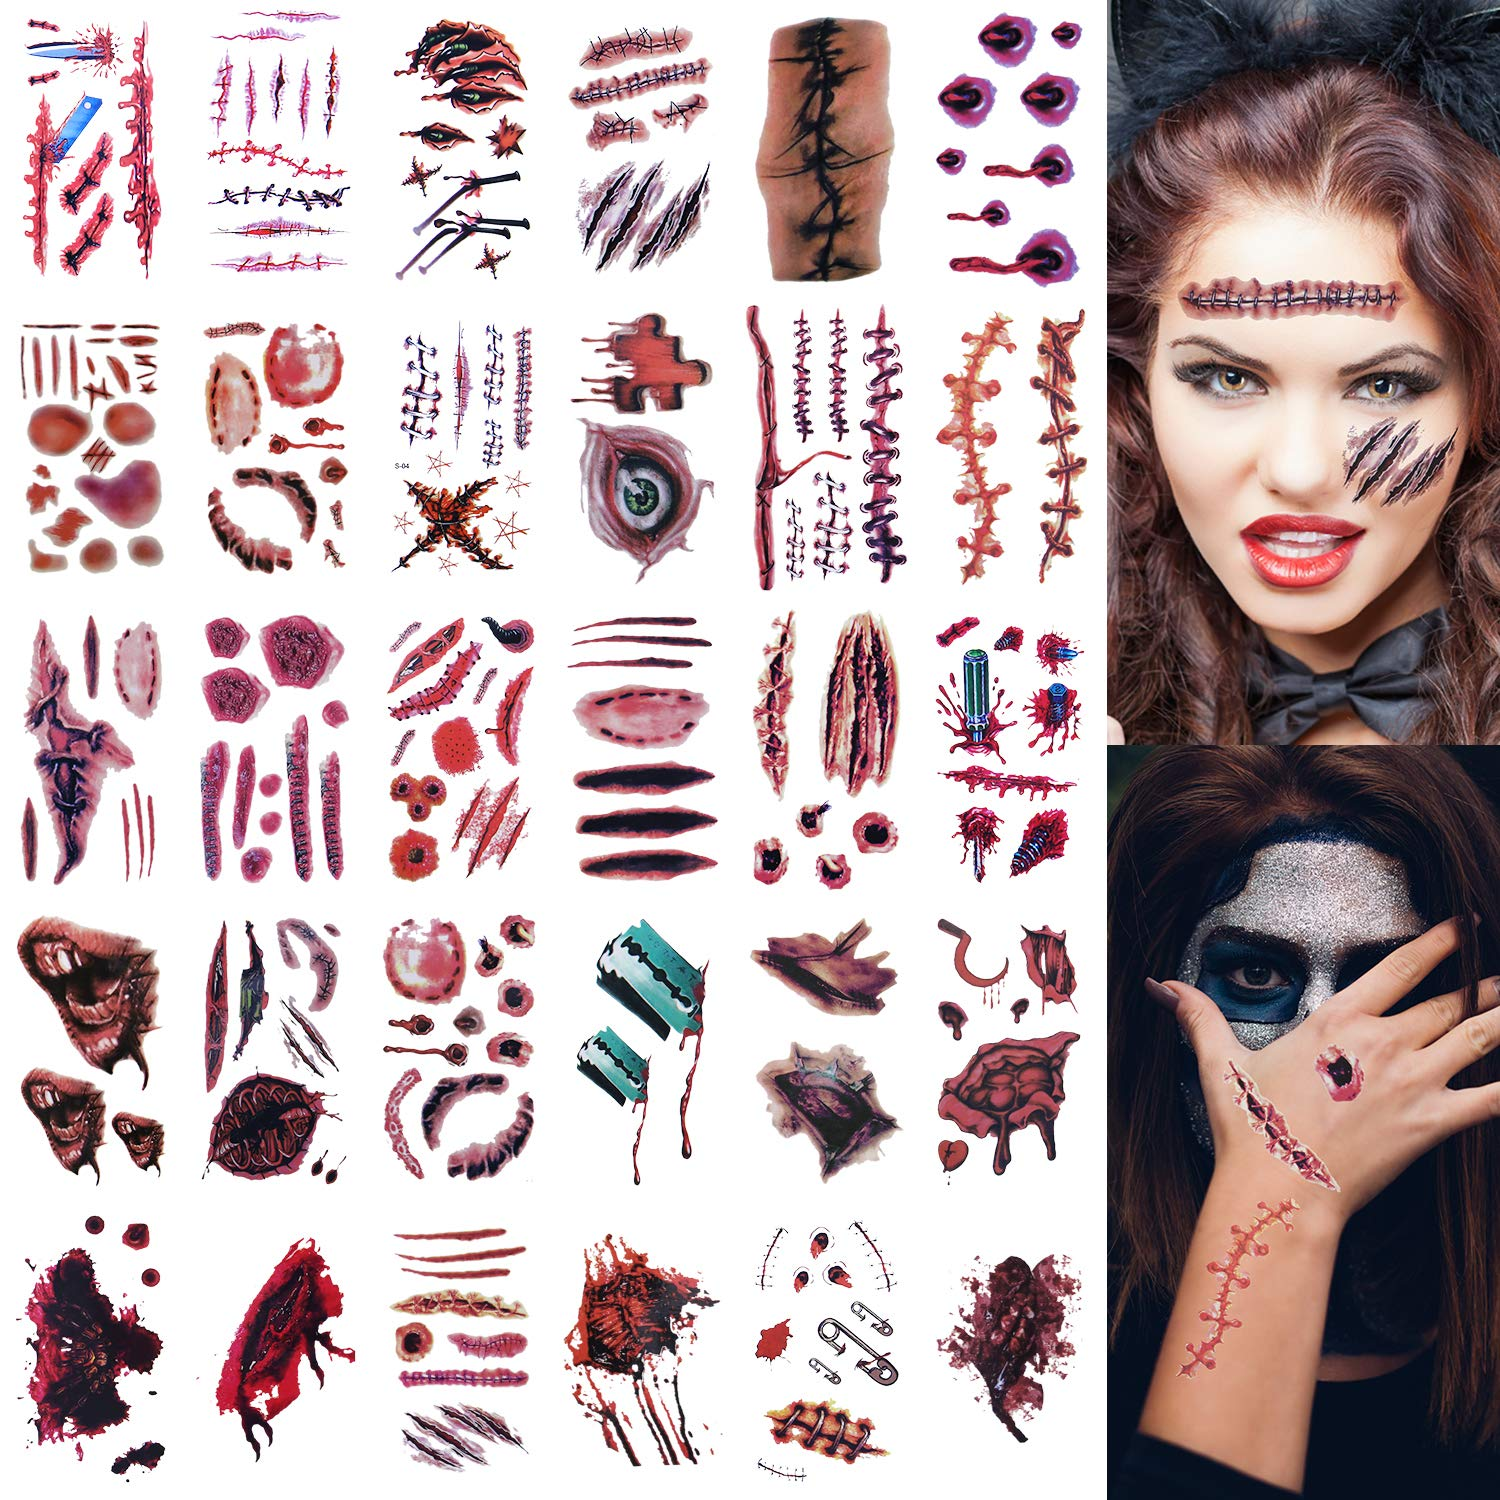 30 Sheets Halloween Zombie Tattoos, Zombie Makeup Kit, Scar Tattoos, 100+ Horror Realistic Fake Blood Temporary Tattoos Bleeding Wound Horror Injury Tattoo Stickers for Zombie Cosplay Party